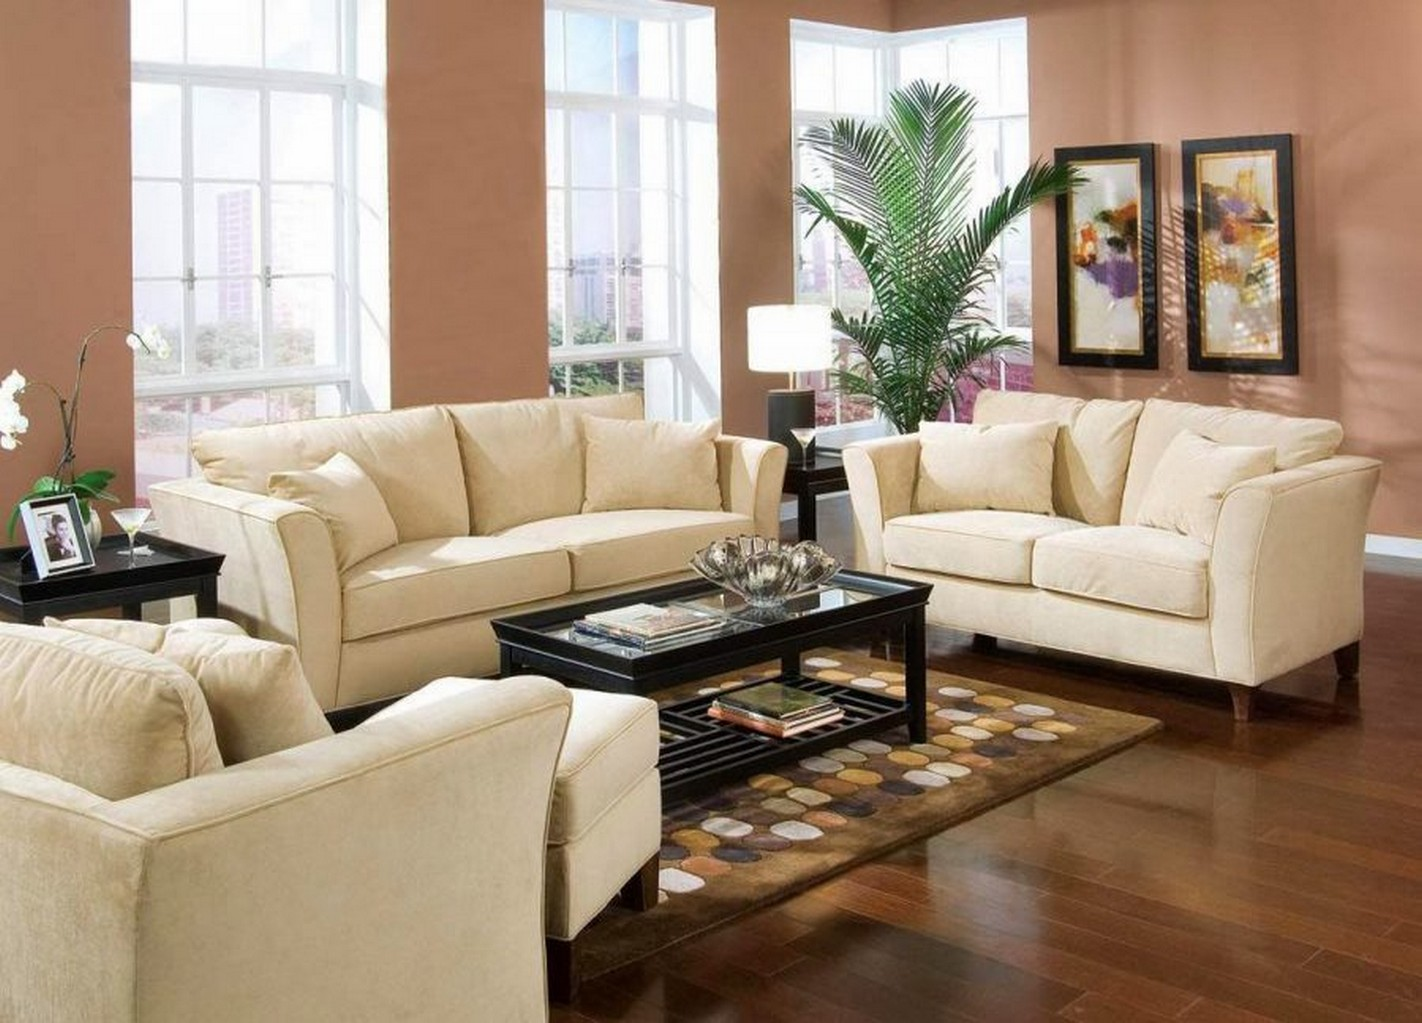 Small living room furniture ideas felish home project for Family room couch ideas